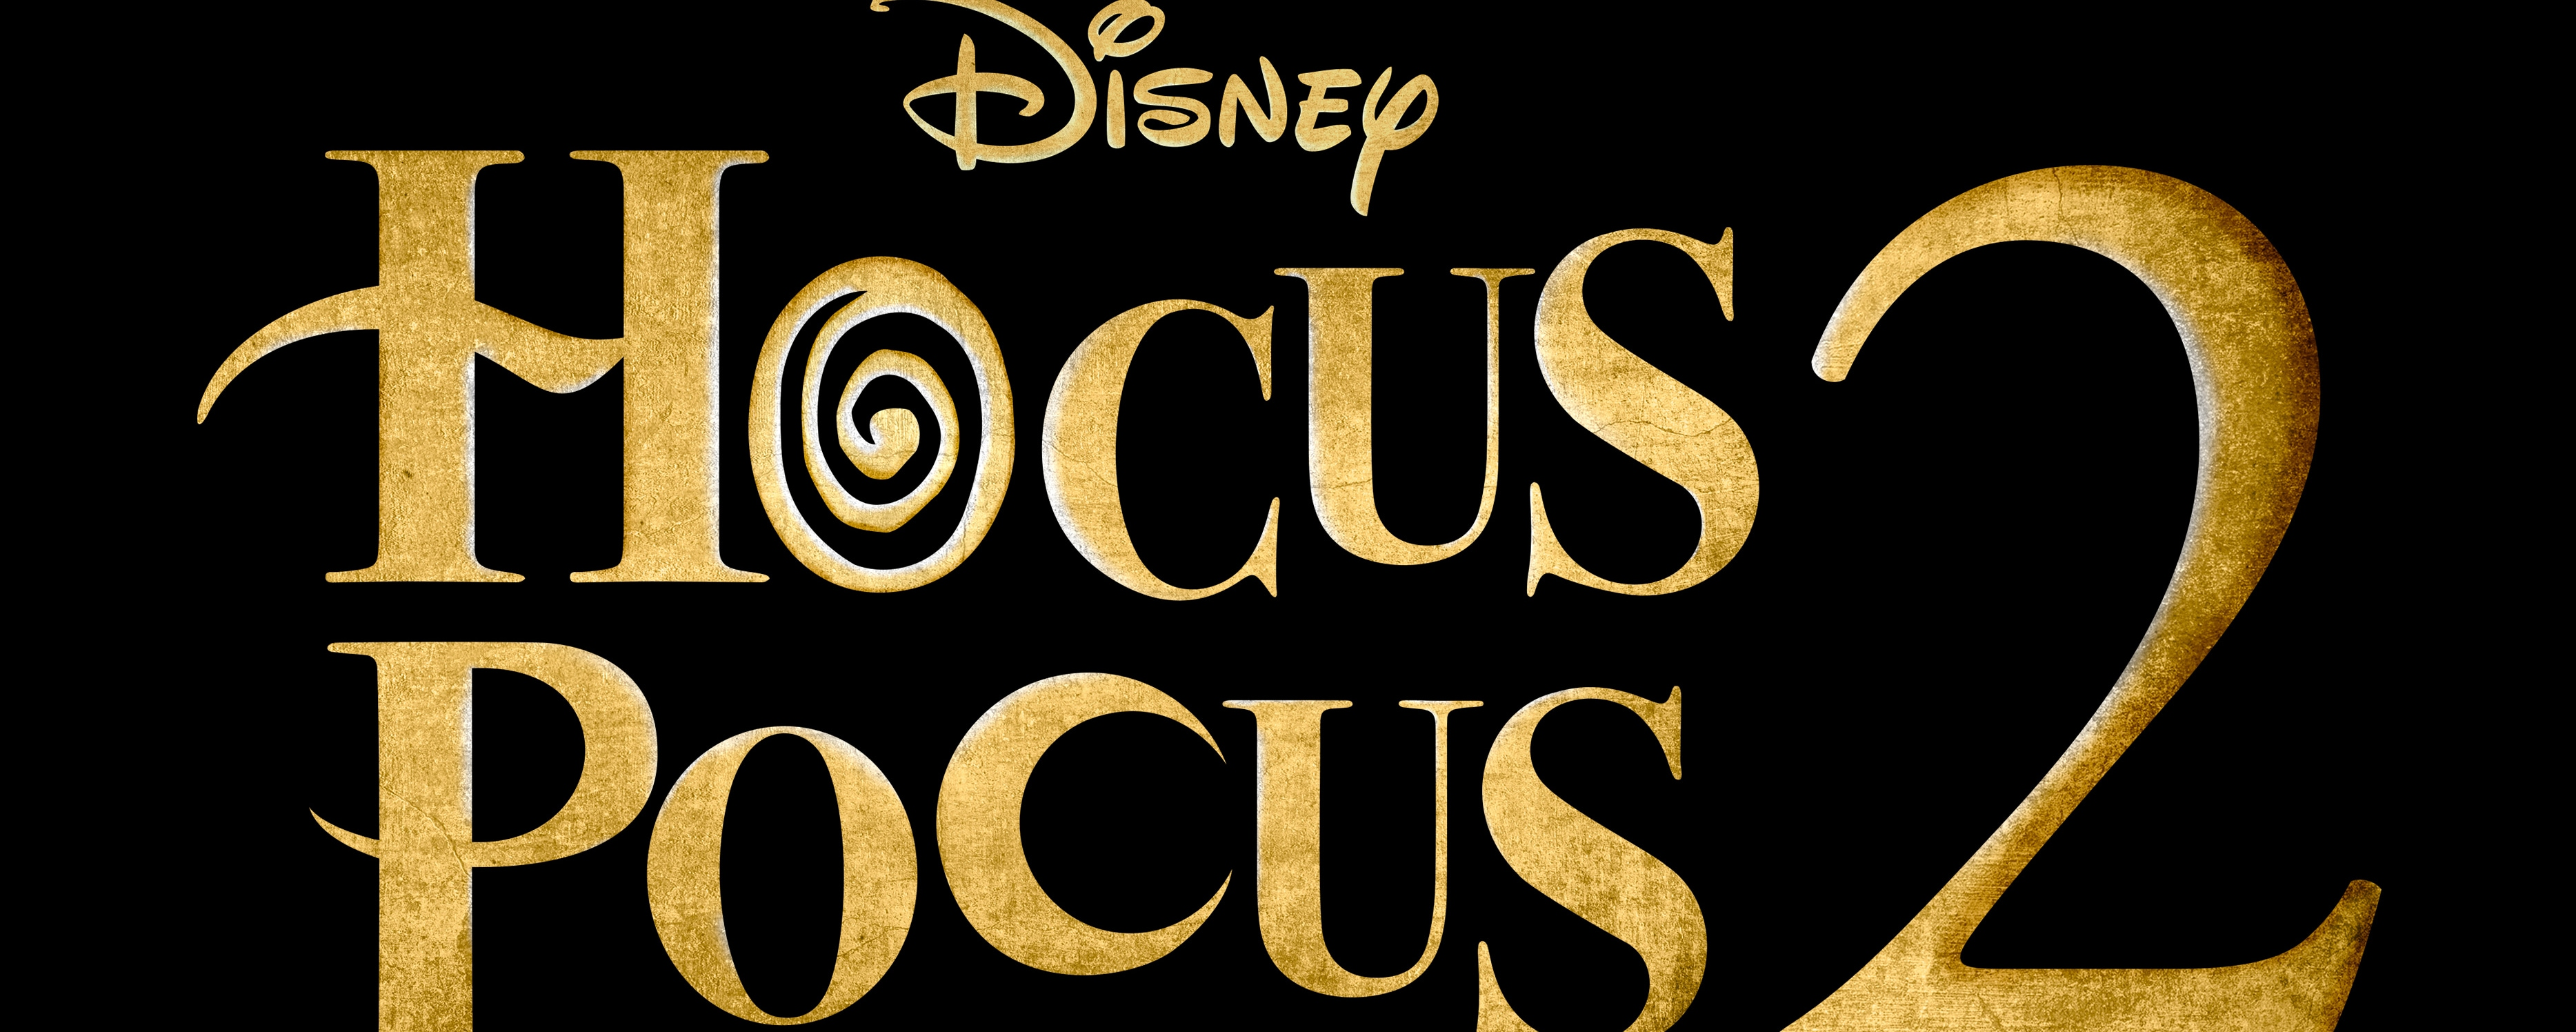 """Bette Midler, Sarah Jessica Parker And Kathy Najimy Set To Conjure Up More Chills, Laughs And Mayhem In Live-Action Comedy """"Hocus Pocus 2"""""""